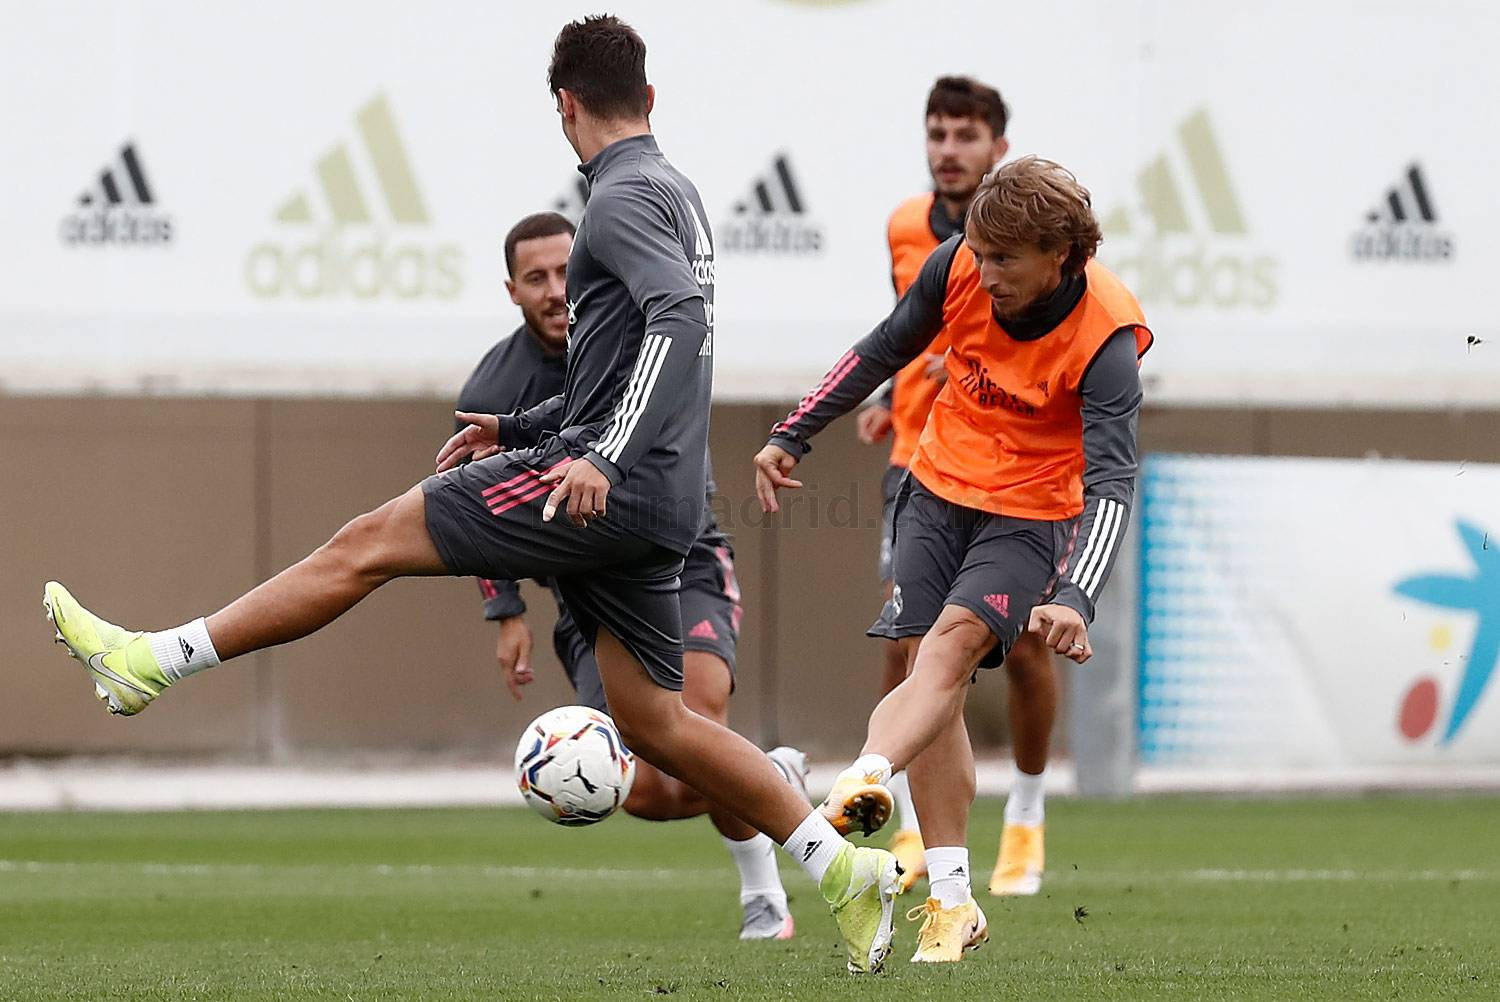 Real Madrid - Entrenamiento del Real Madrid  - 24-09-2020